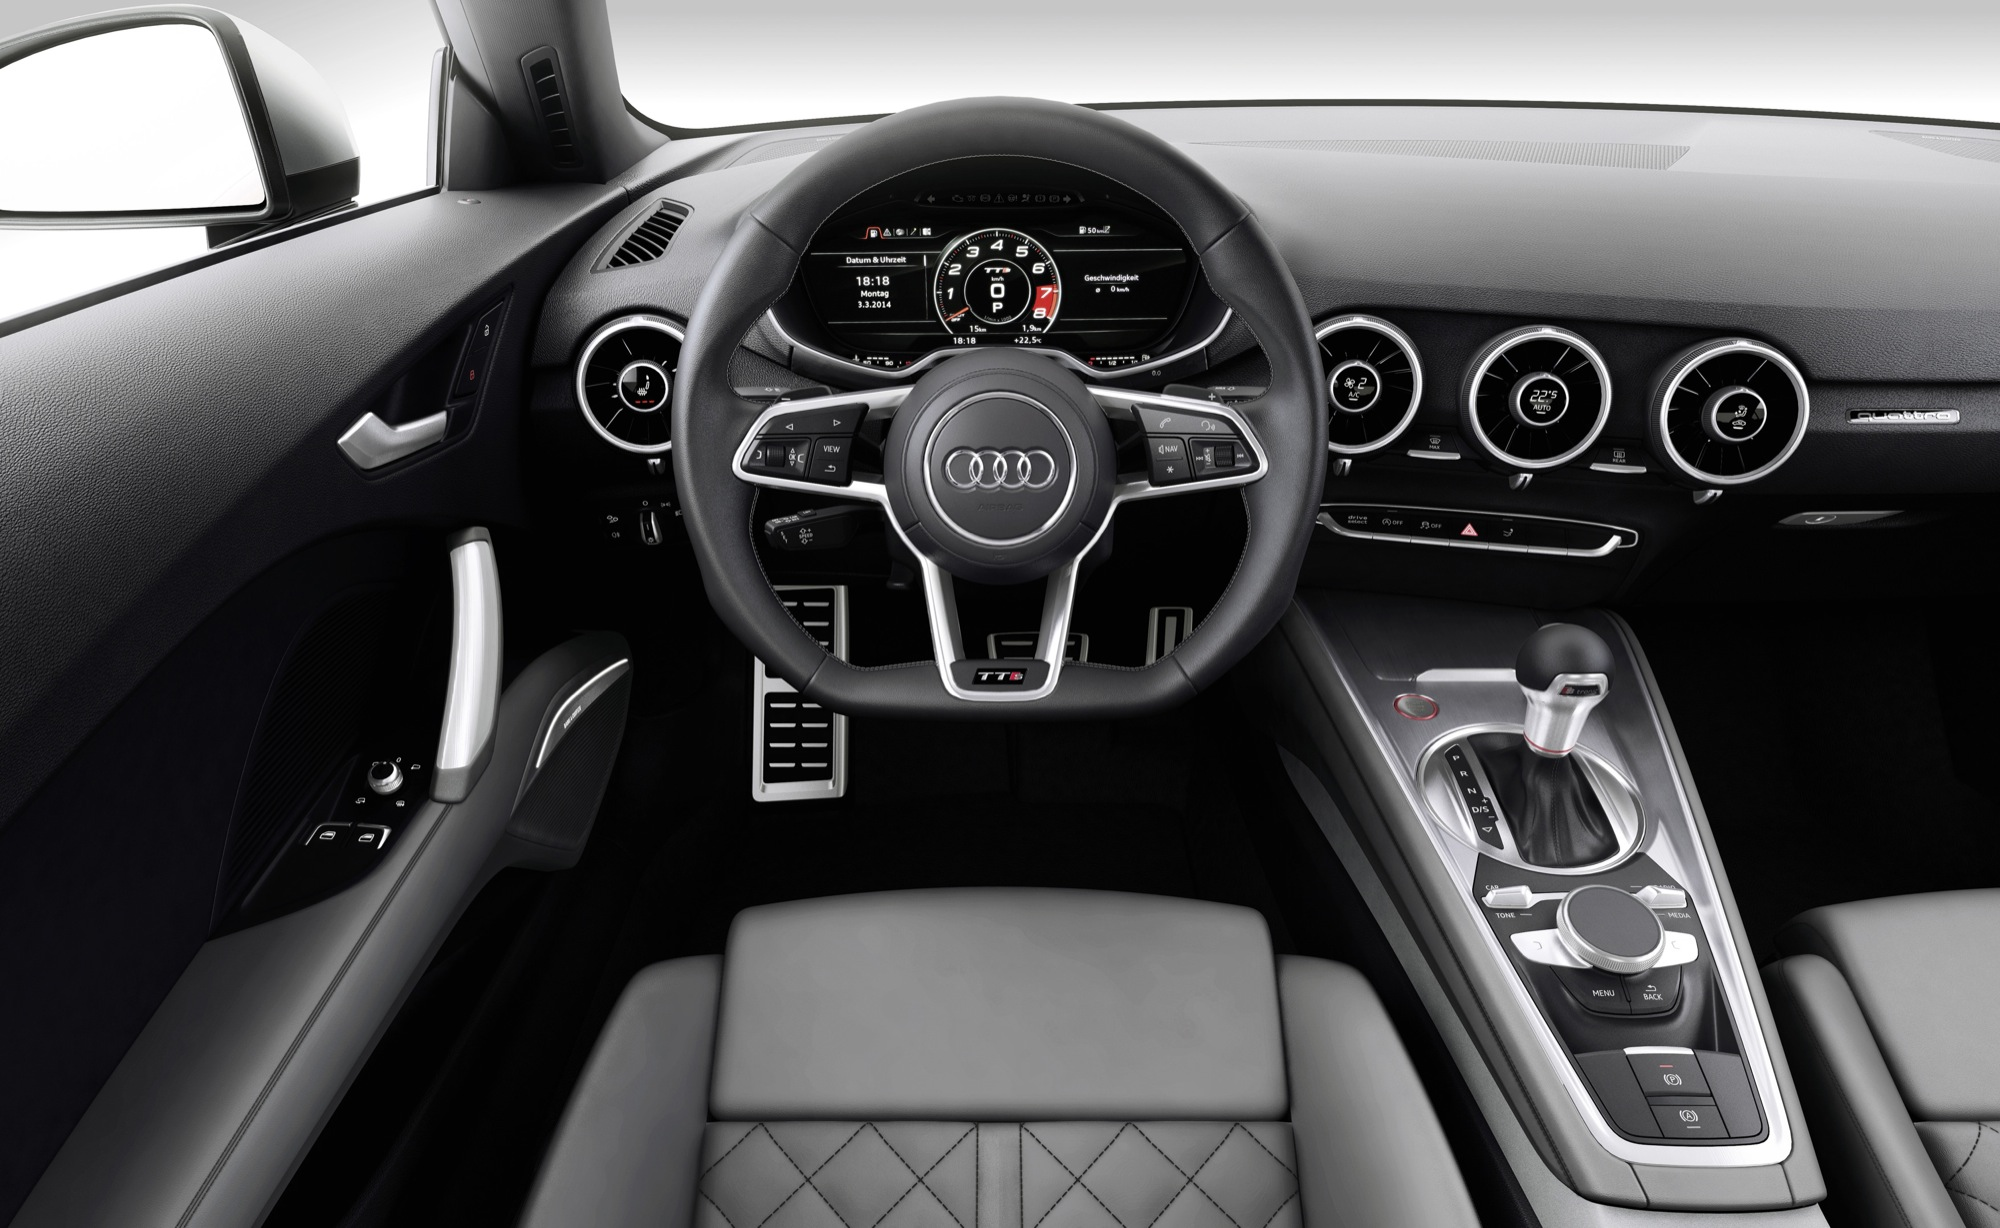 Refcars 2015 audi tt interior teaser 2017 2018 best for Audi tt interieur